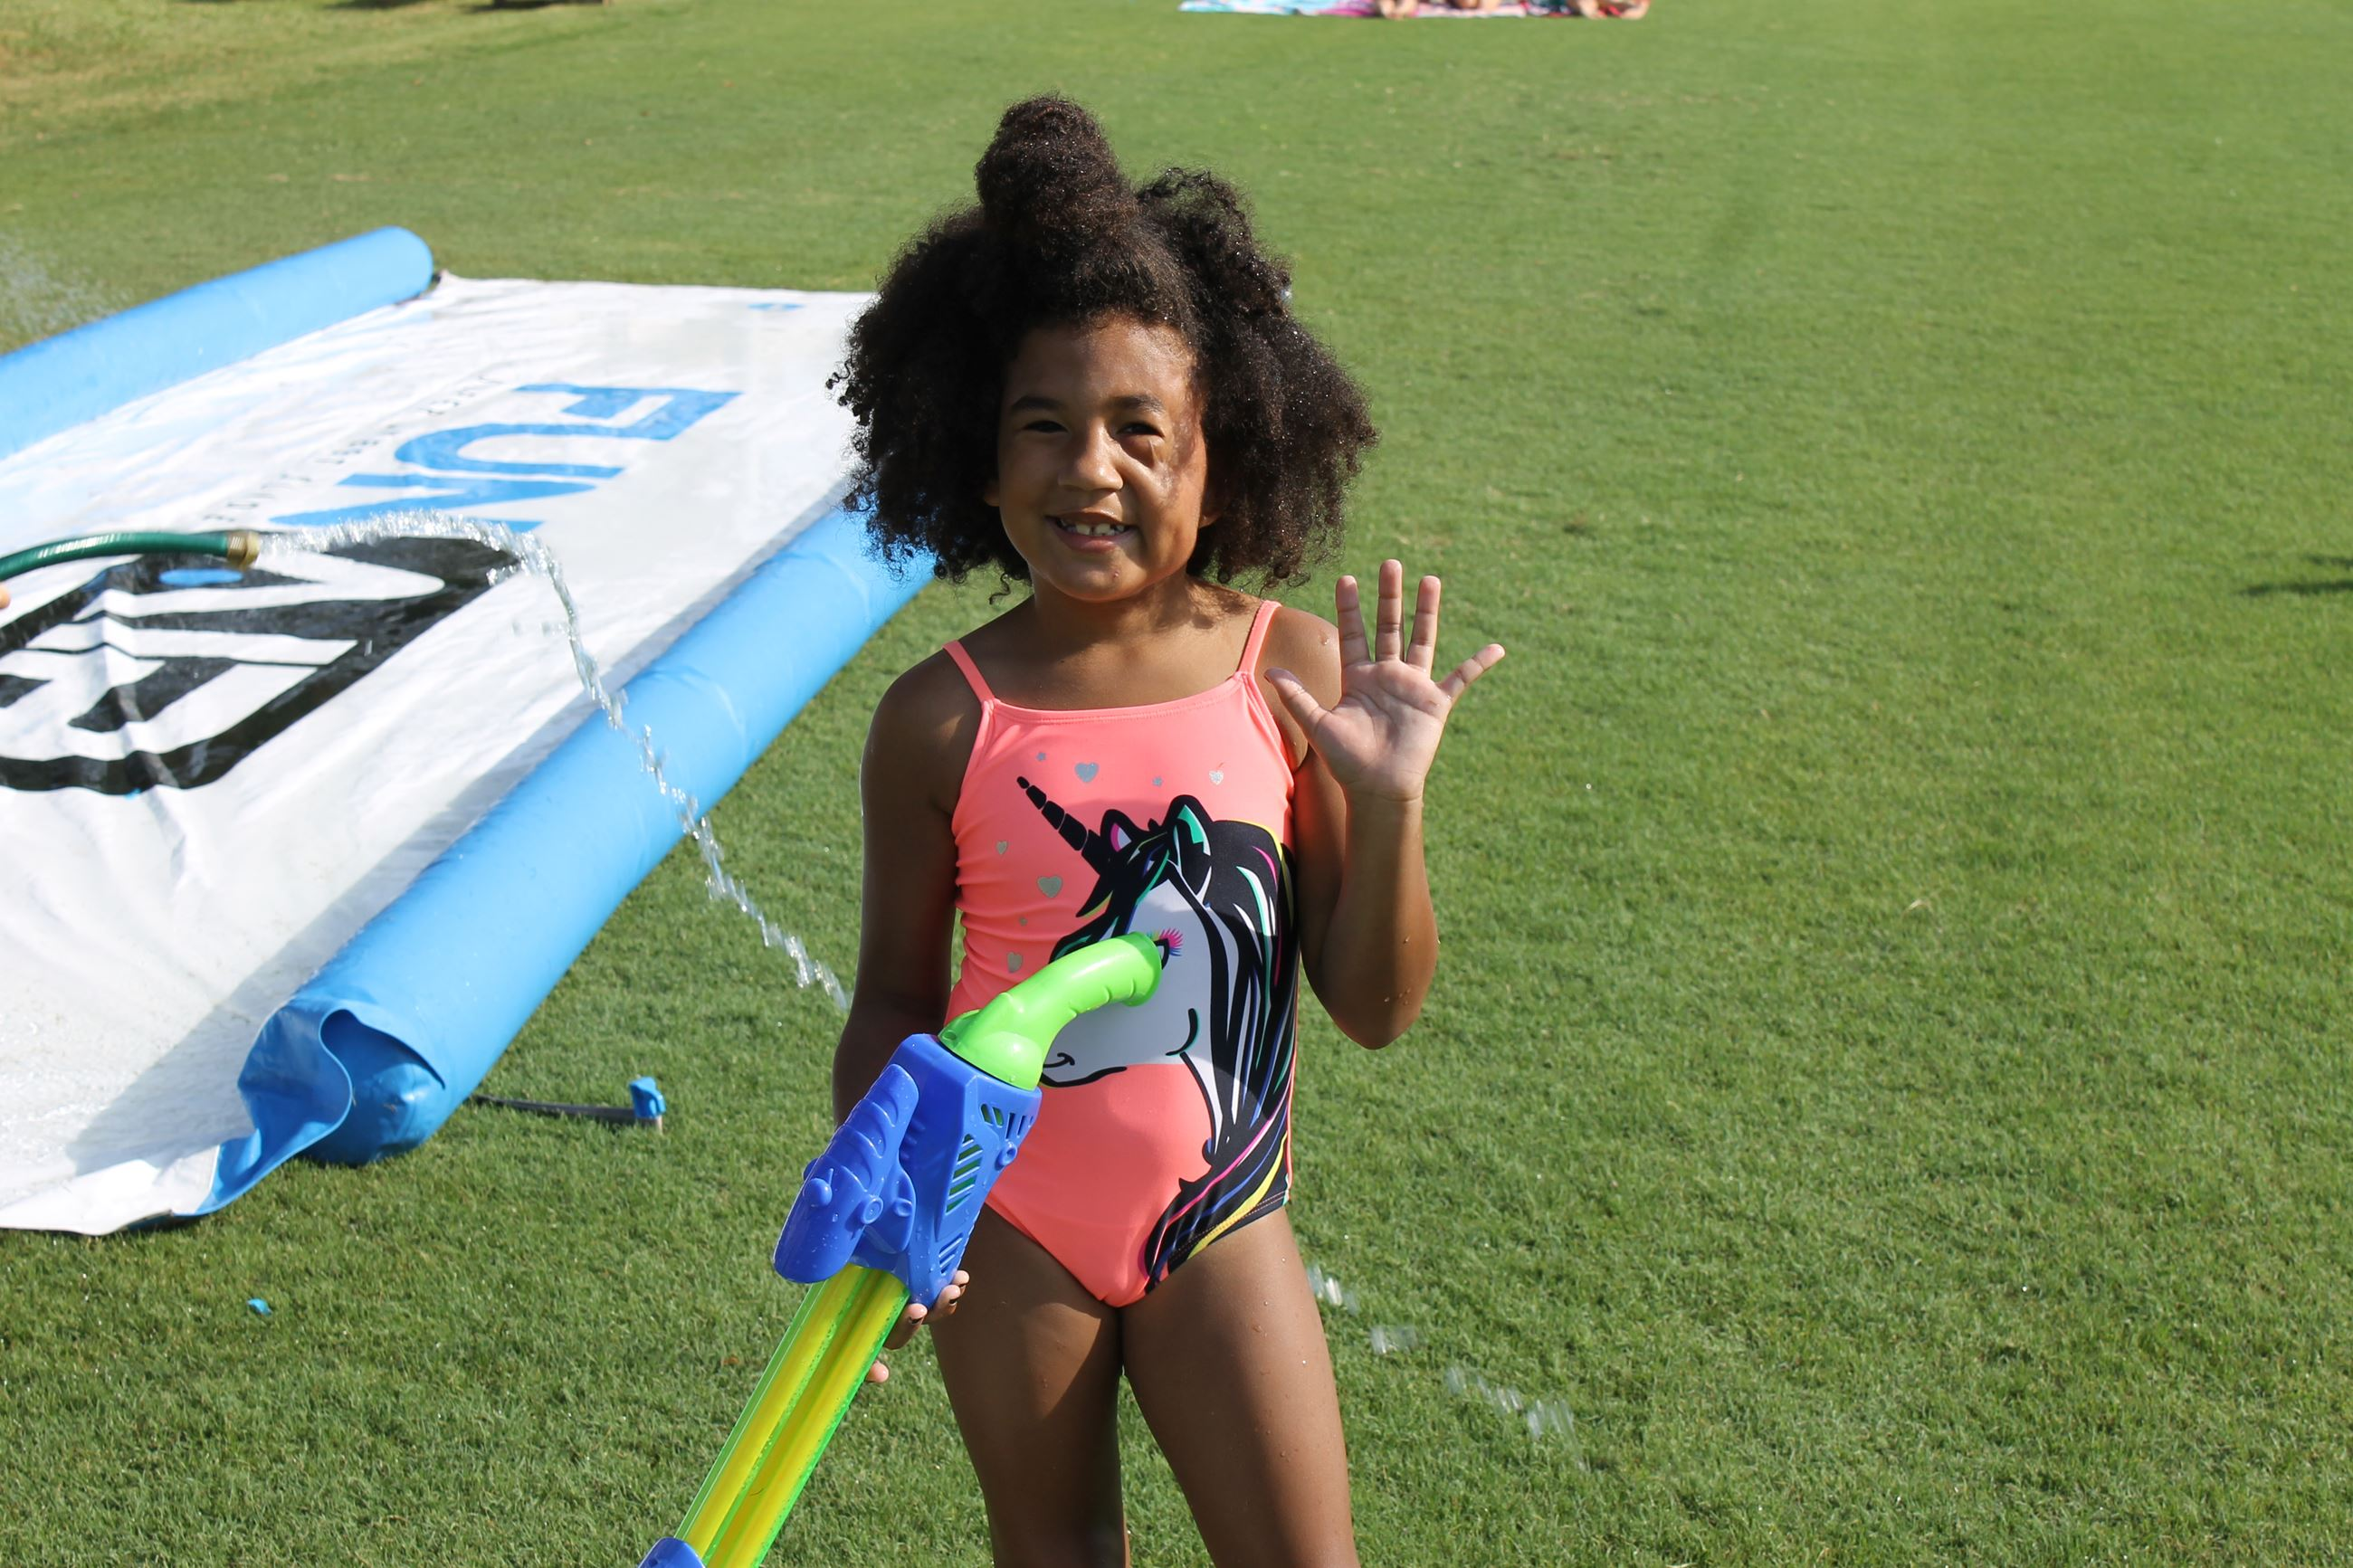 Girl smiles while holding a water gun